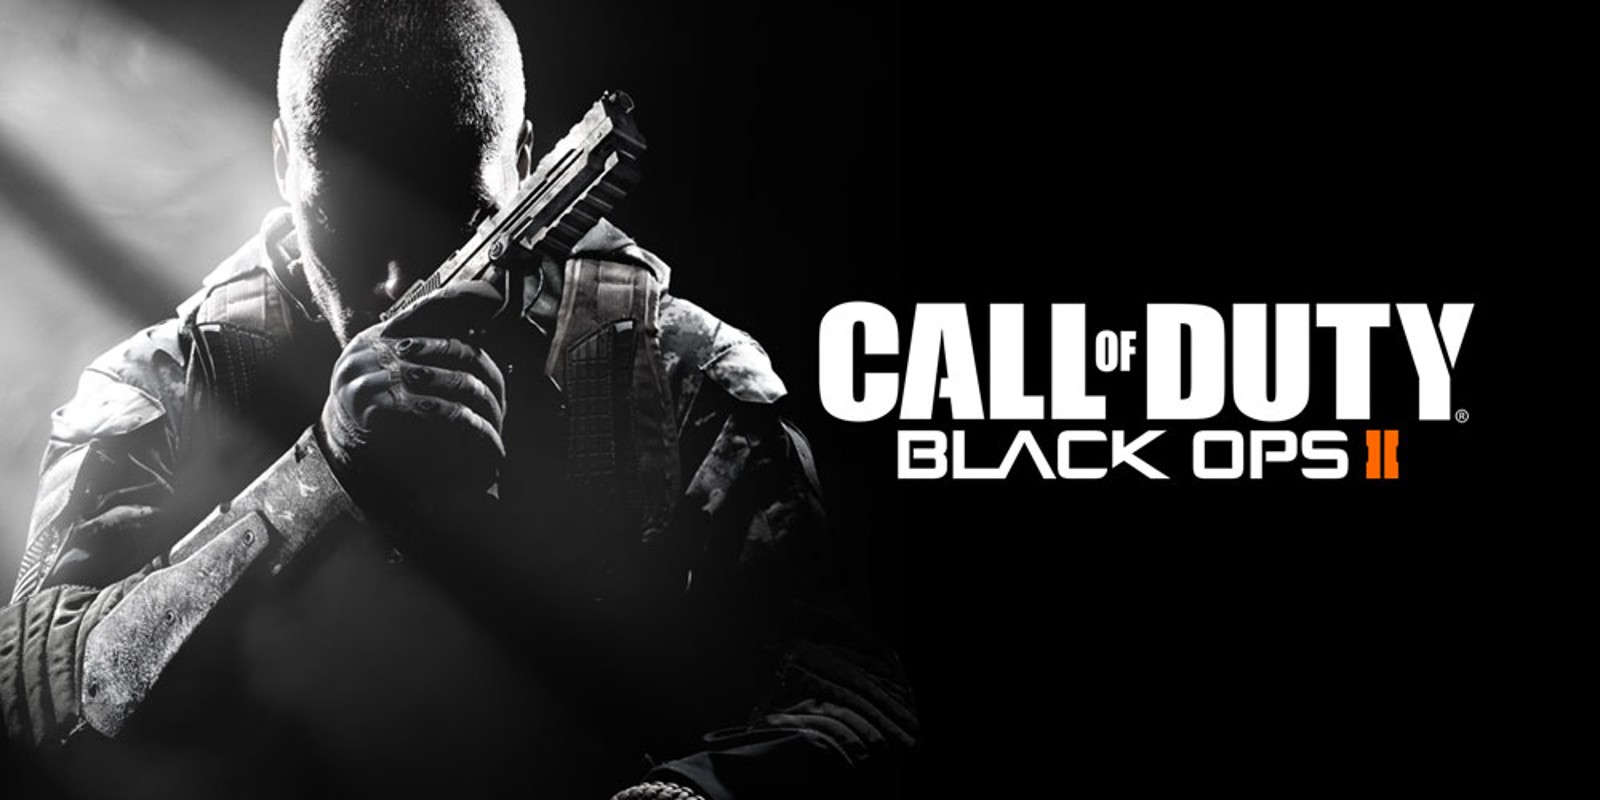 call of duty black ops download torrent